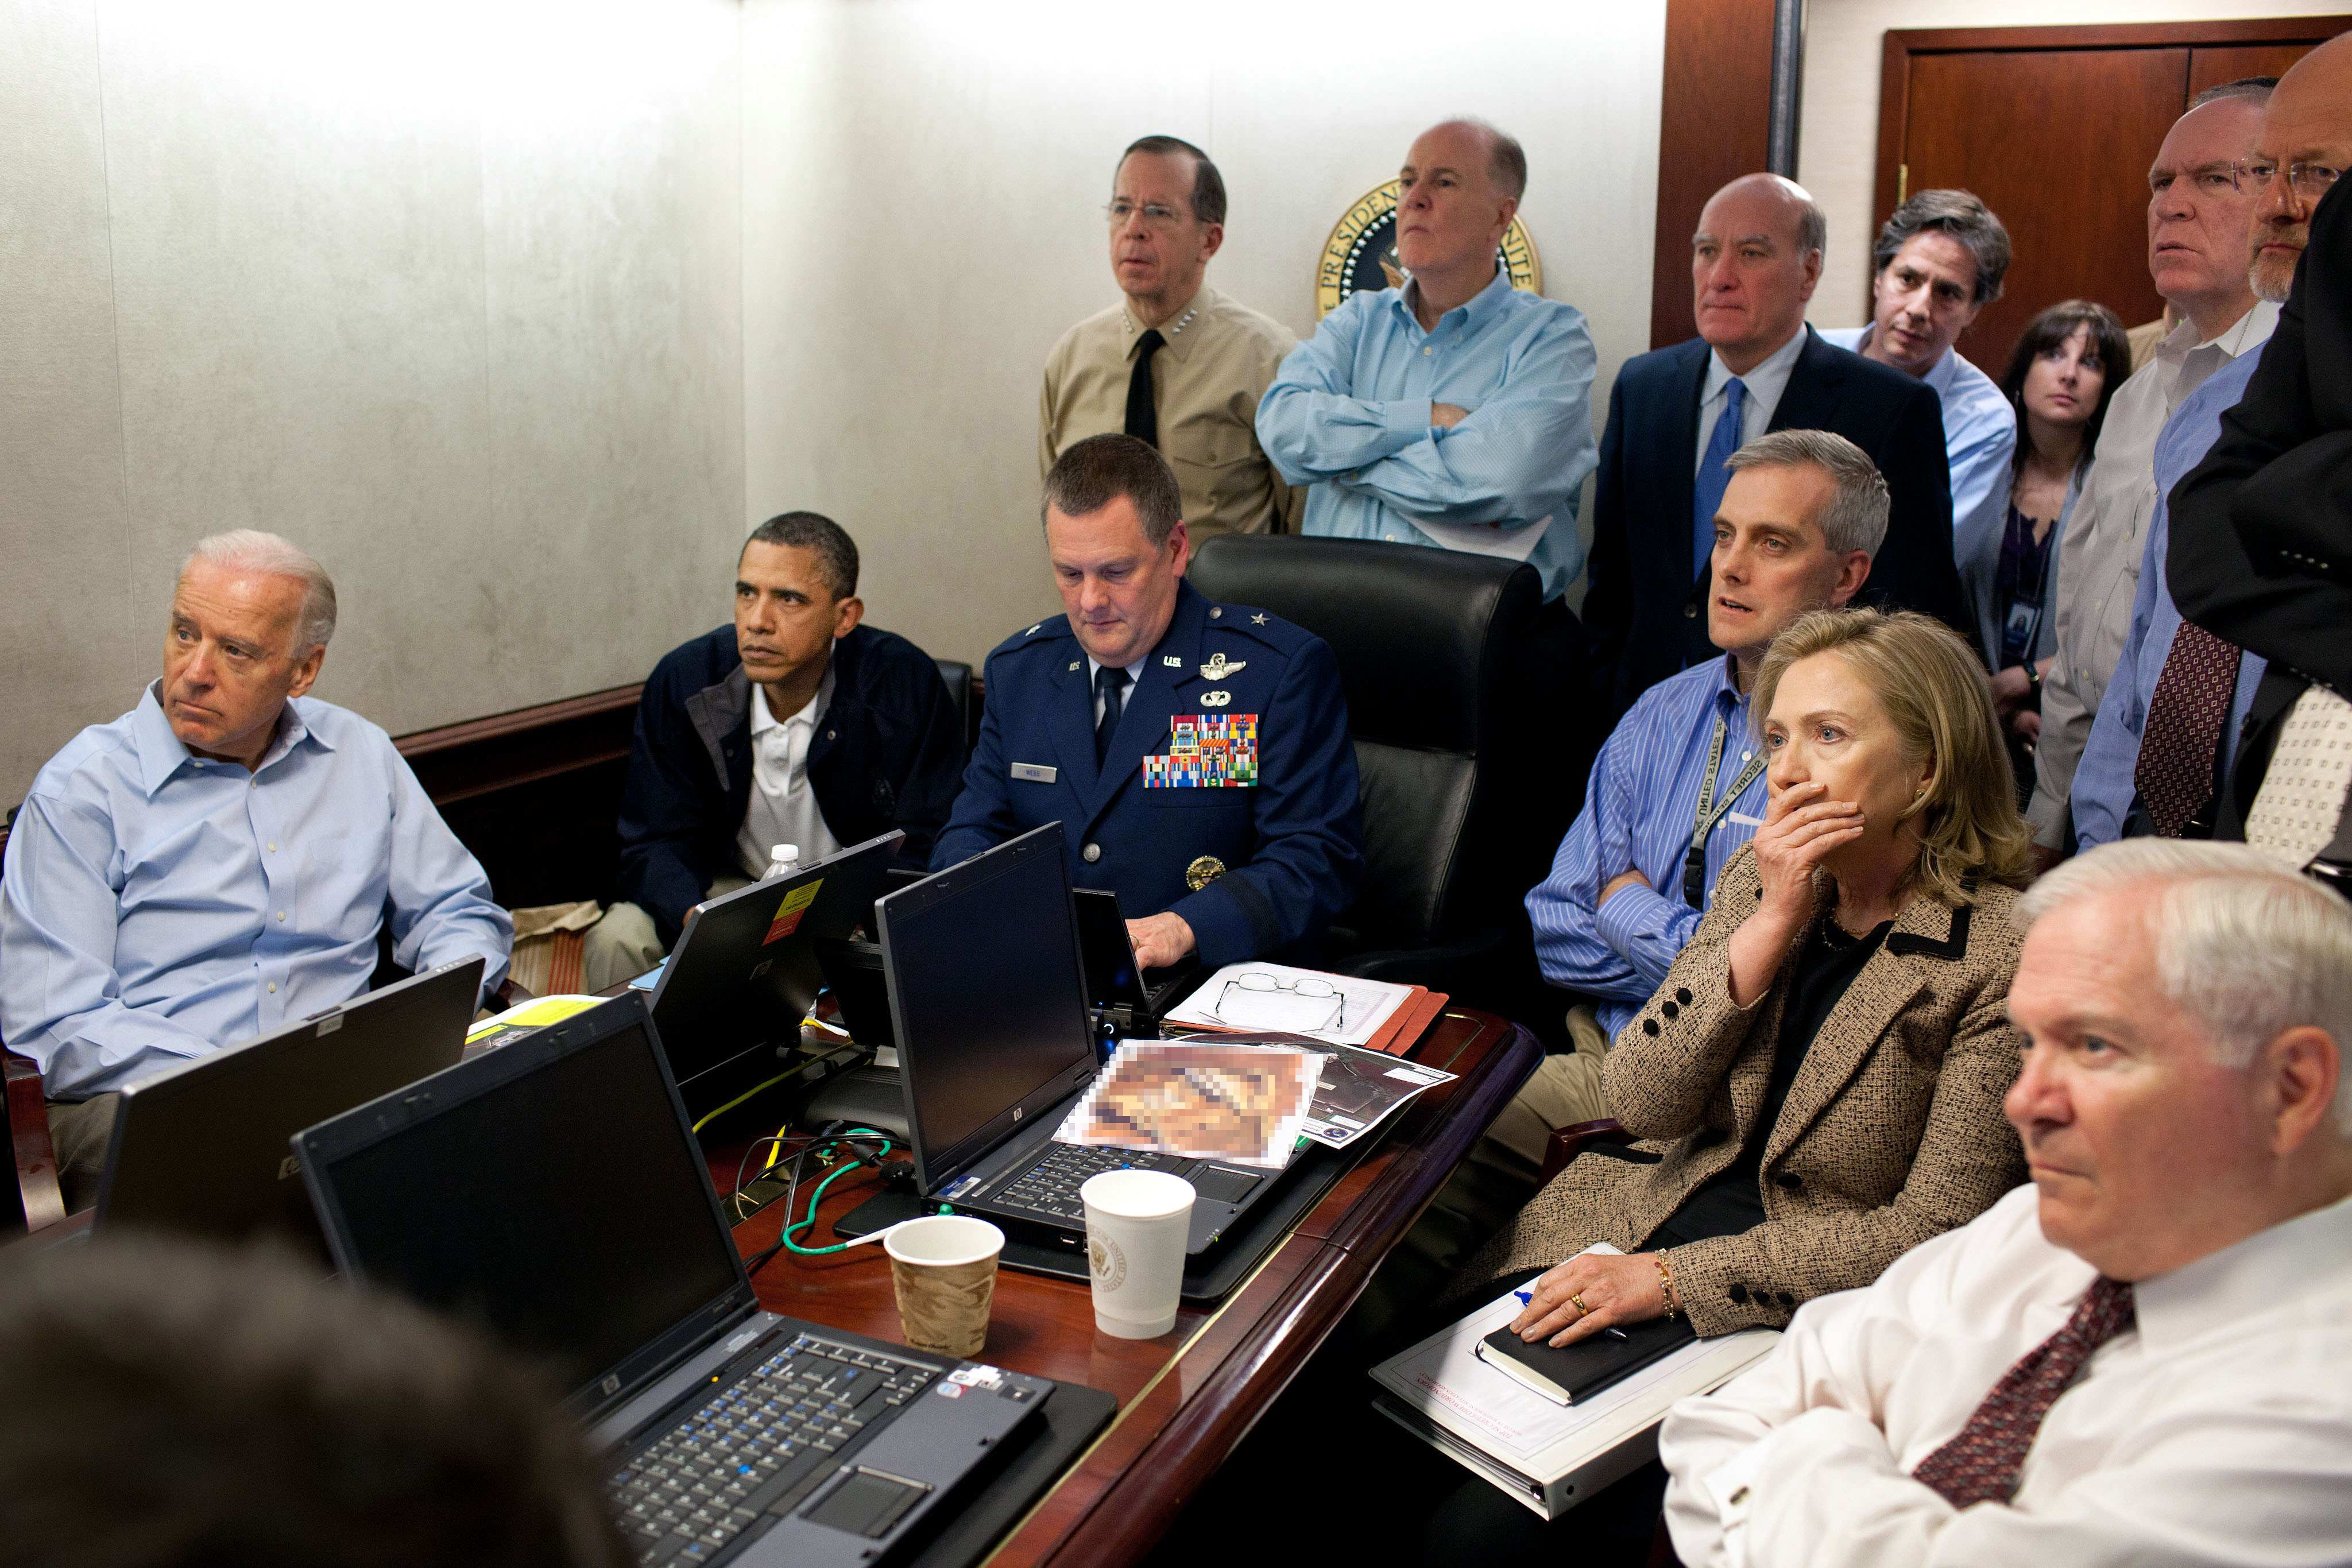 """President Barack Obama, Secretary of State <a href=""""http://www.huffingtonpost.com/2011/05/09/hillary-clinton-der-tzitung-removed-situation-room_n_859254.html"""" target=""""_blank"""">Hillary Clinton</a> and other members of the national security team watch an update of the mission against Osama bin Laden in the White House Situation Room in Washington, D.C. on May 1, 2011."""